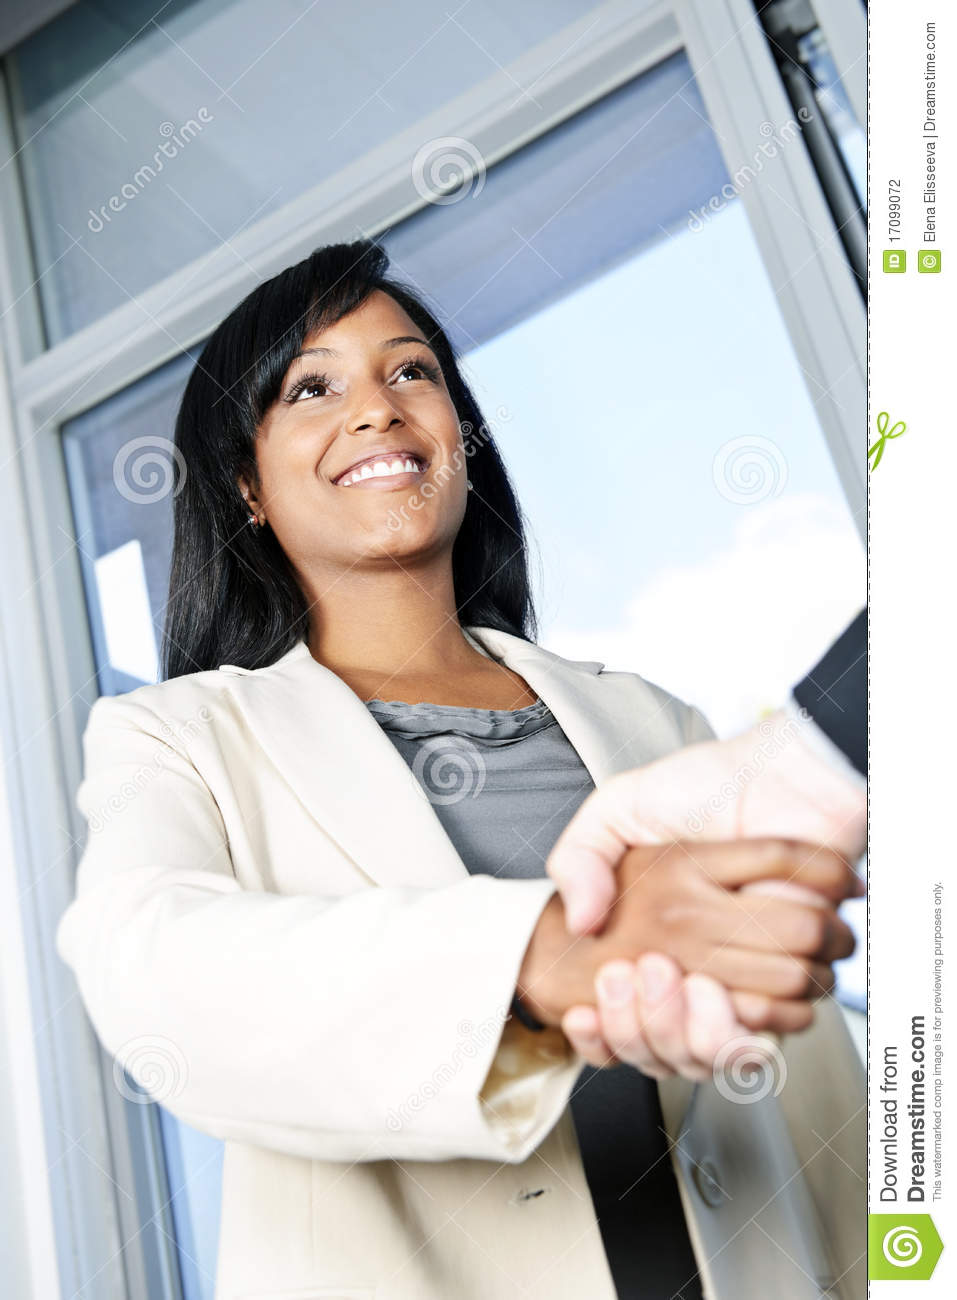 Business woman shaking hands